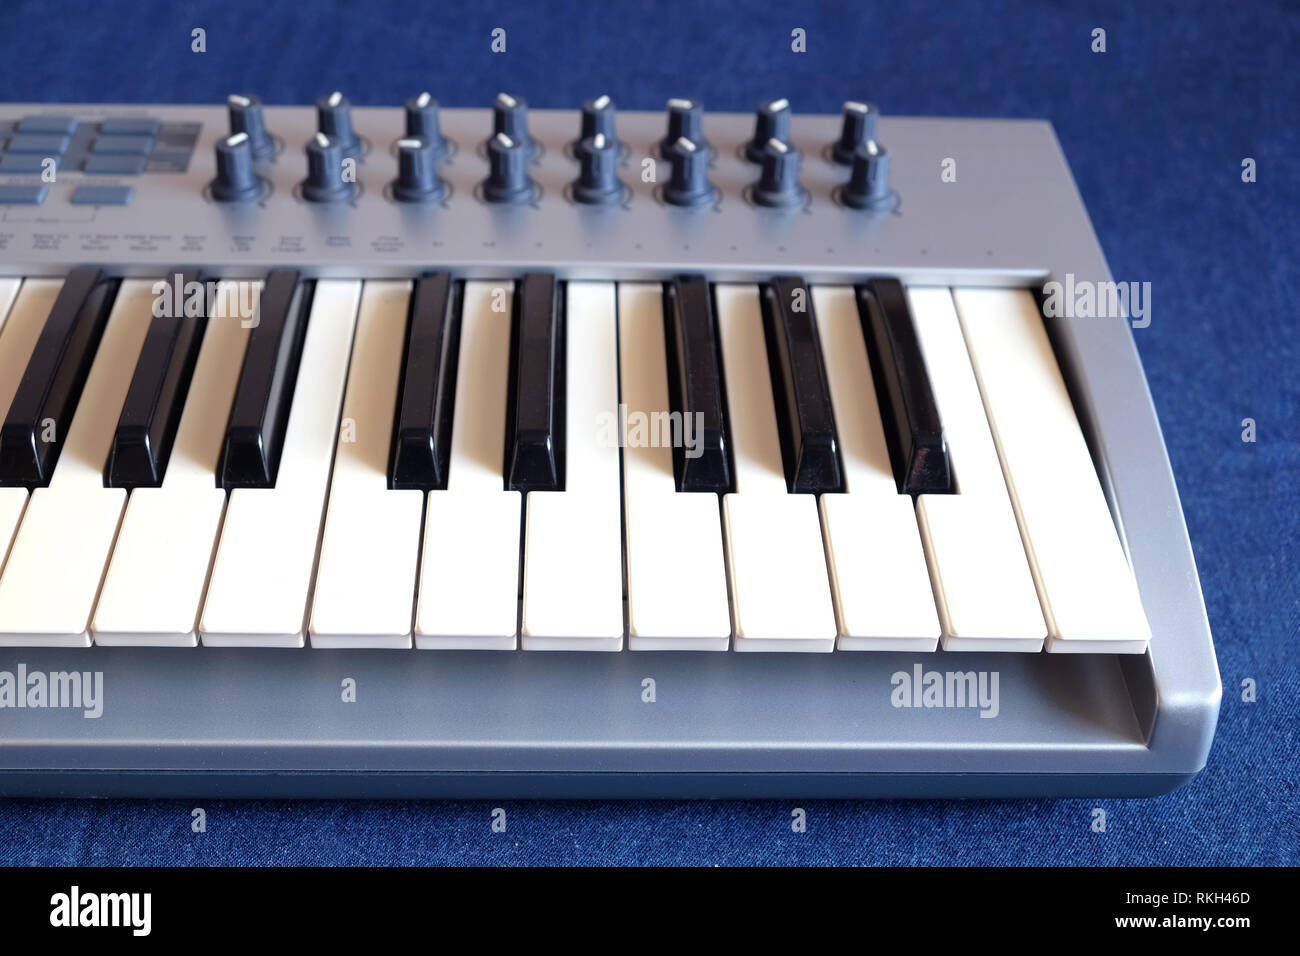 Electronic synthesizer keyboard with many control knobs on denim background top view closeup - Stock Image